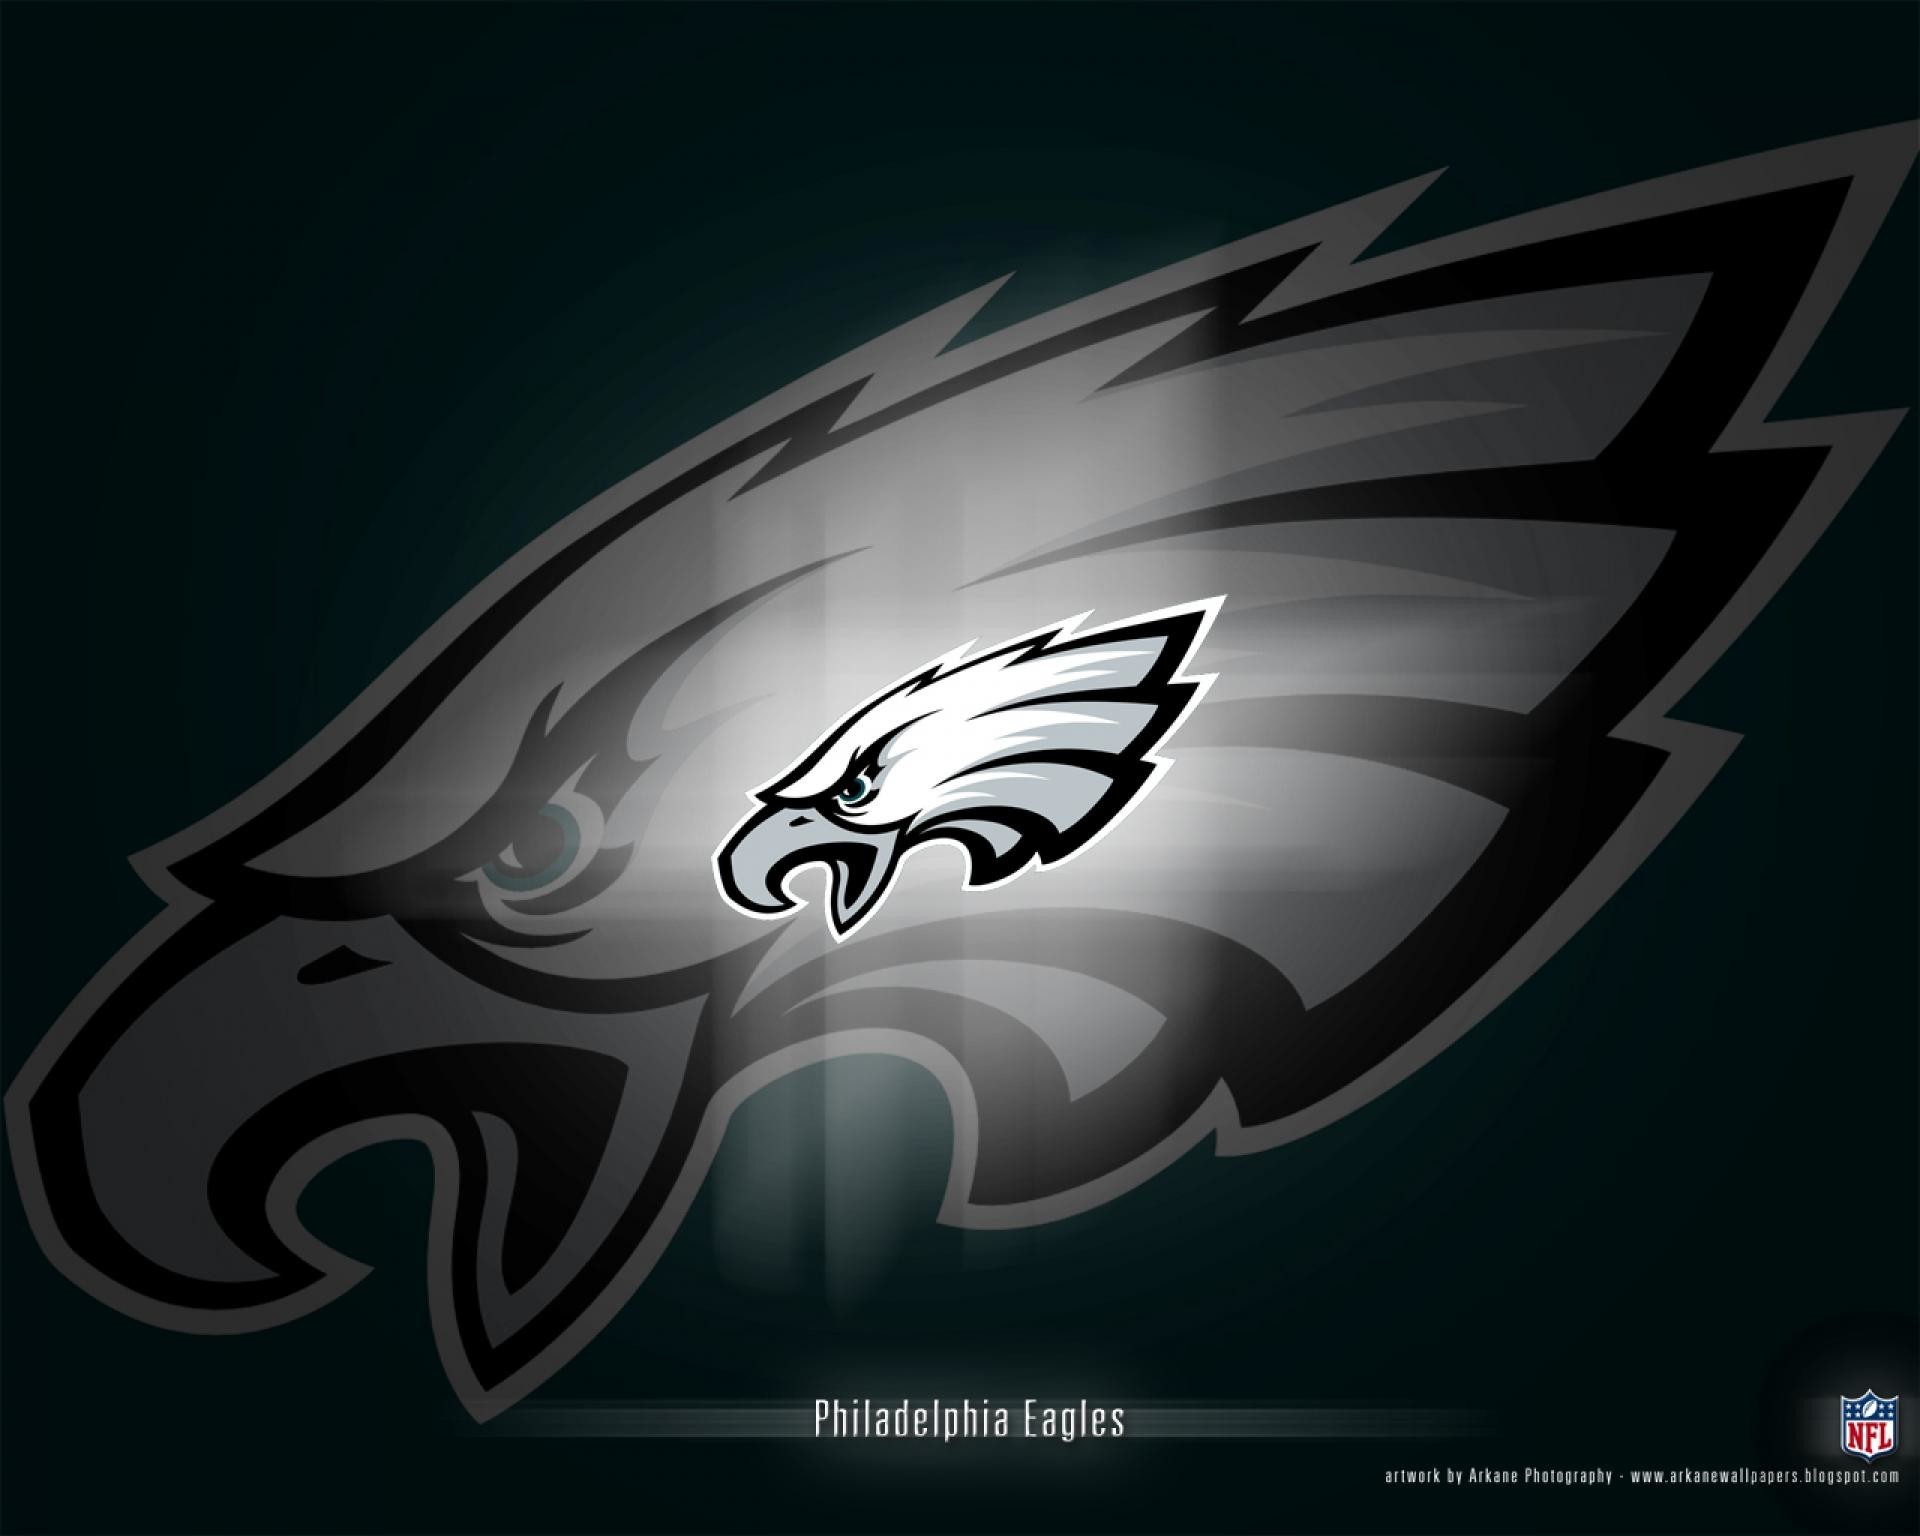 1920x1536 Philadelphia Eagles Wallpaper HD 16 - 1920 X 1536